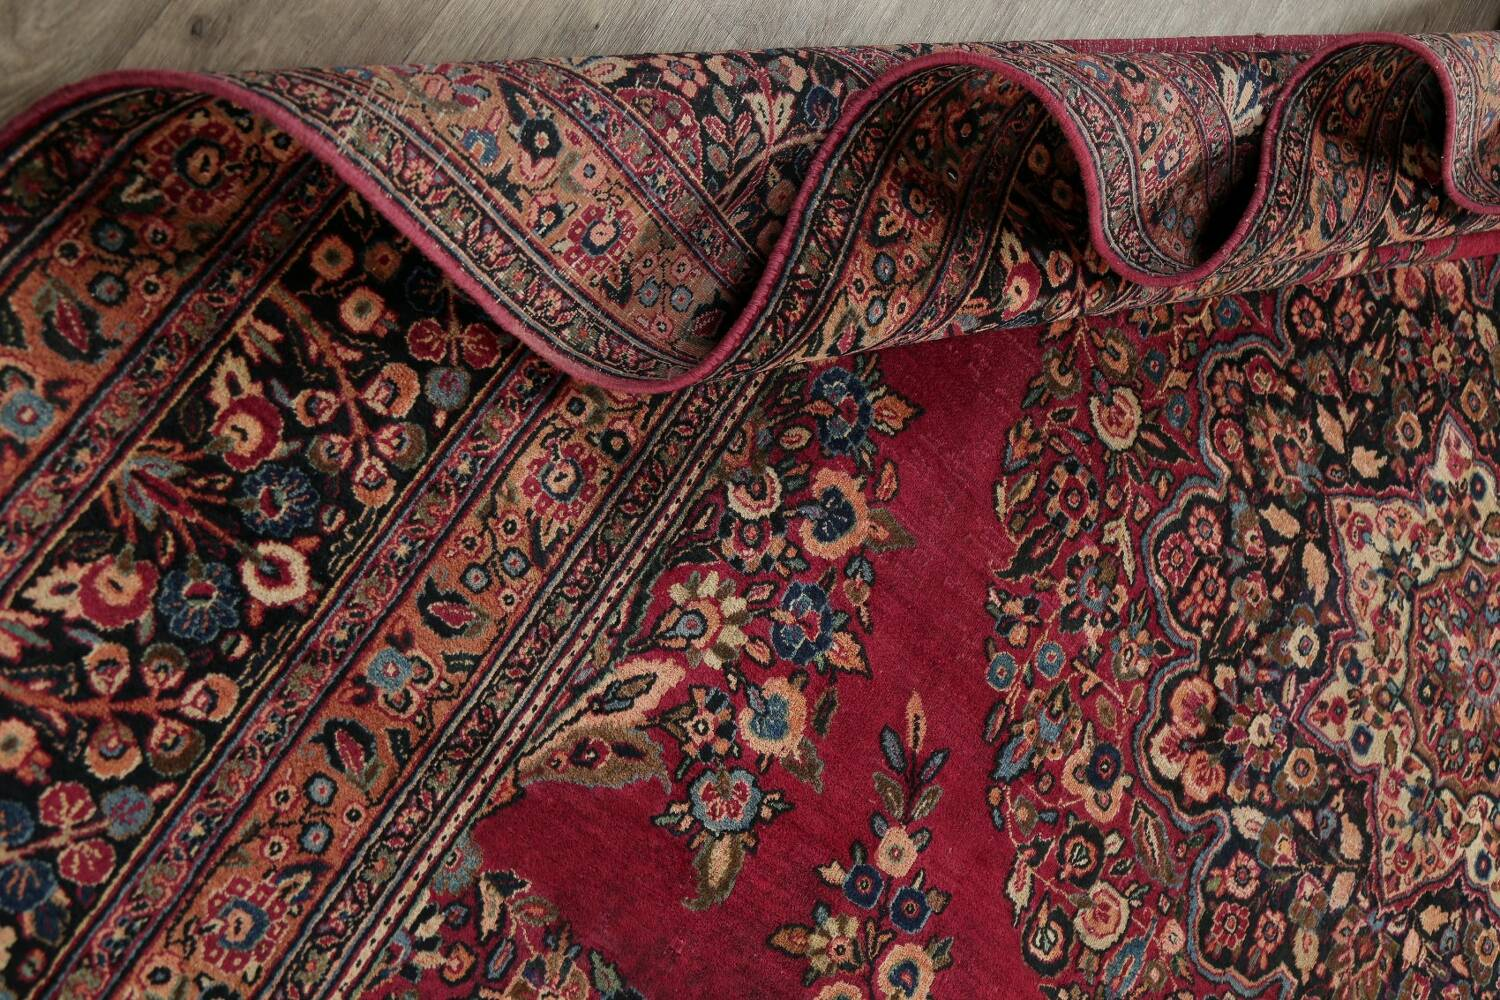 Antique Floral Red Dorokhsh Persian Rug Large 11x14 image 21